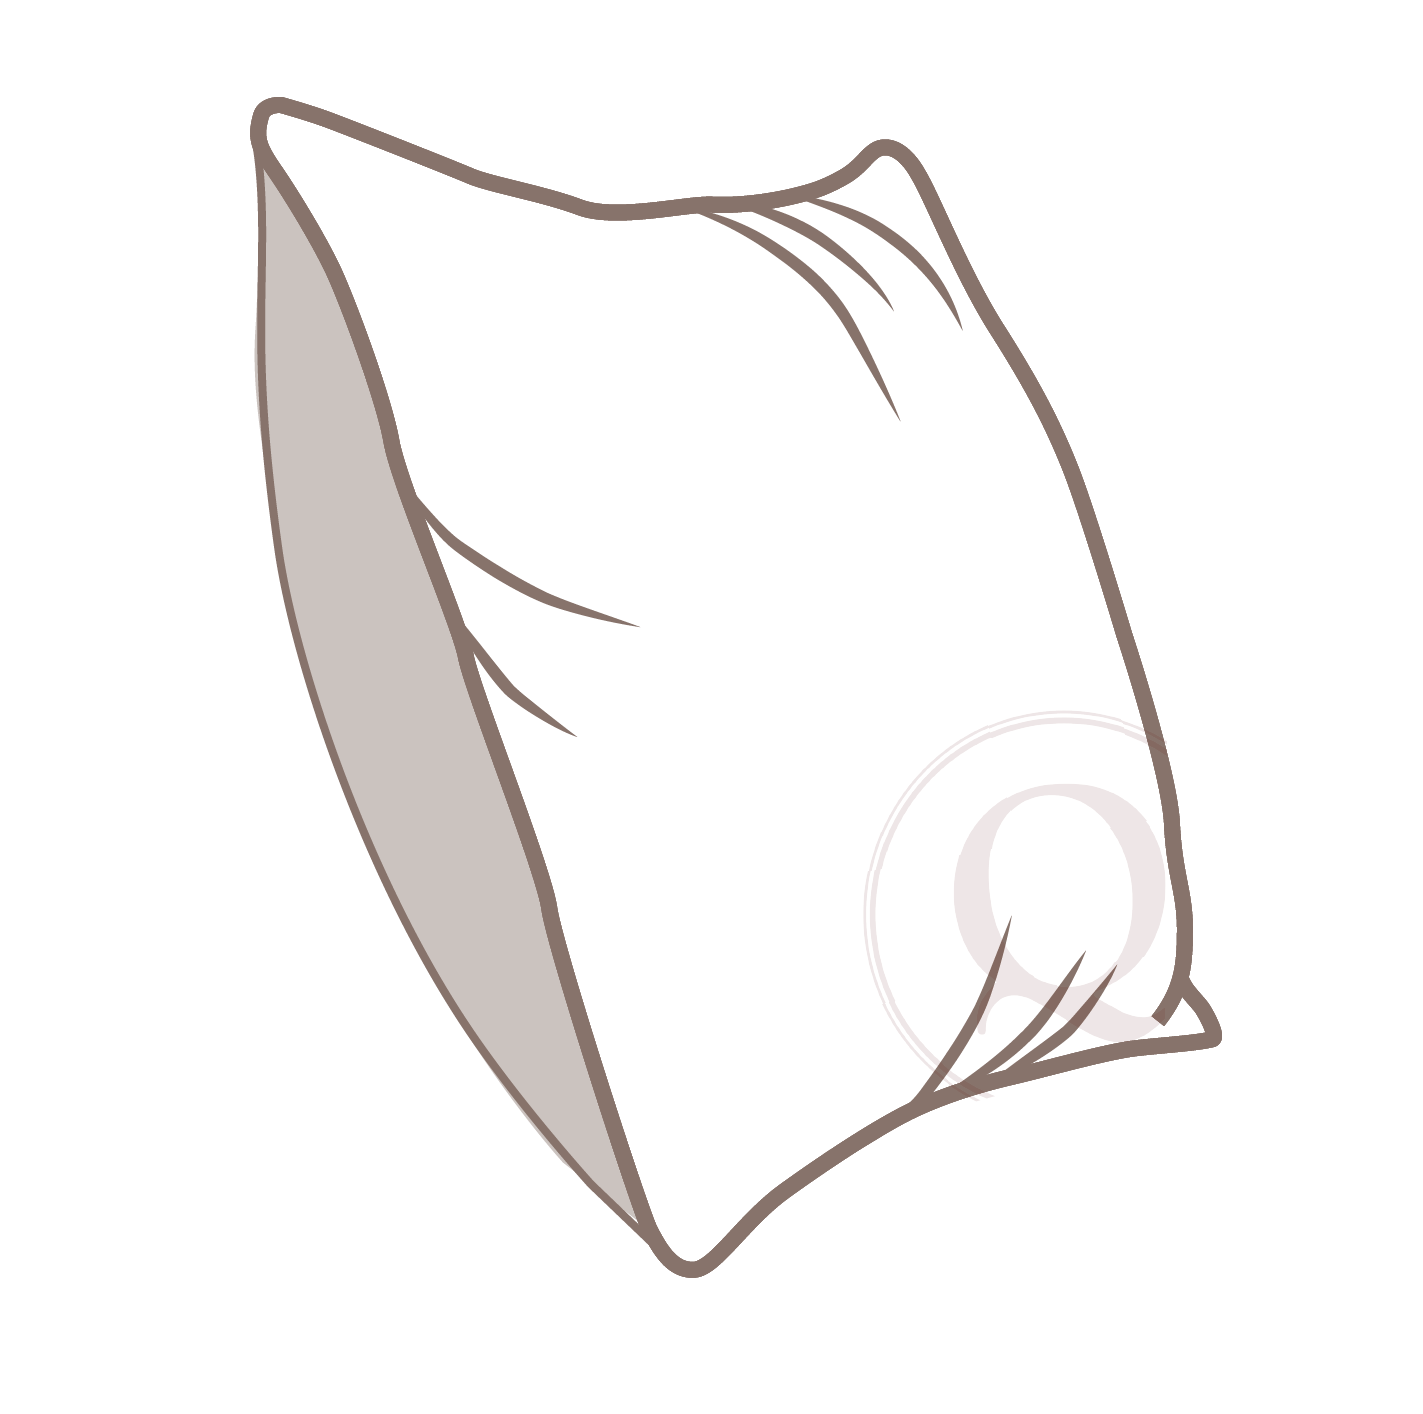 standard - This insert is made of conjugated polyester fill inside a 70% polyester, 30% cotton cover. A design optimal for high usage areas where it is important for the pillow to keep a very firm, full shape over a long life.